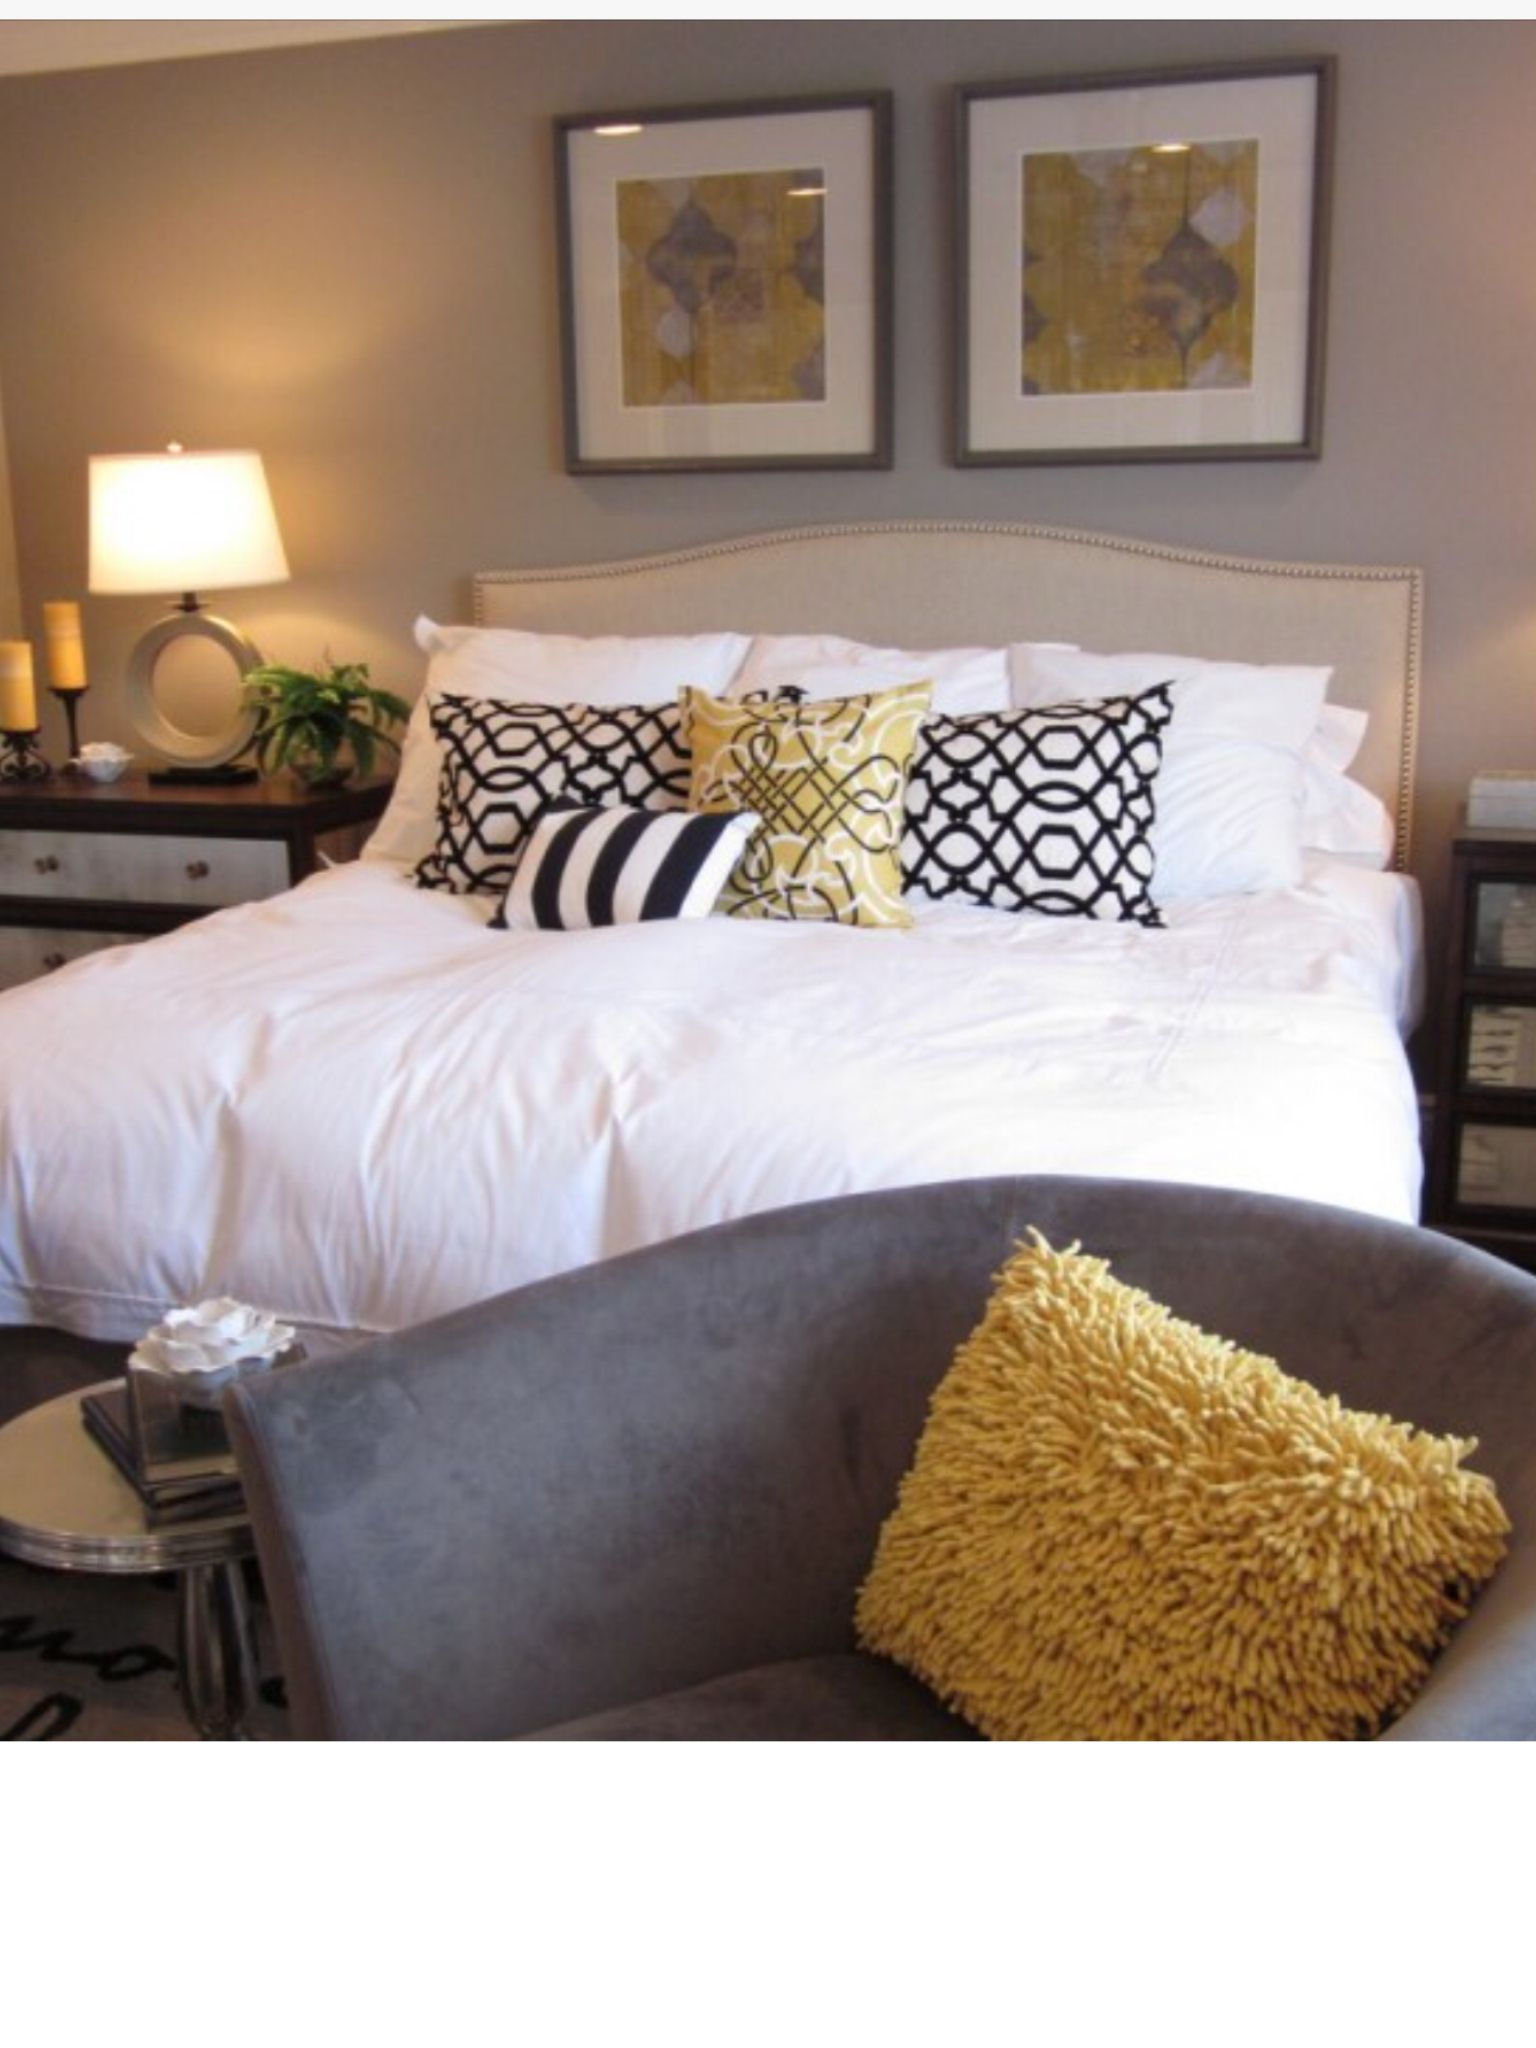 Bedroom Colour Scheme Black White Mustard And Beige Bedroom Color Schemes Bedroom Colors Home Decor